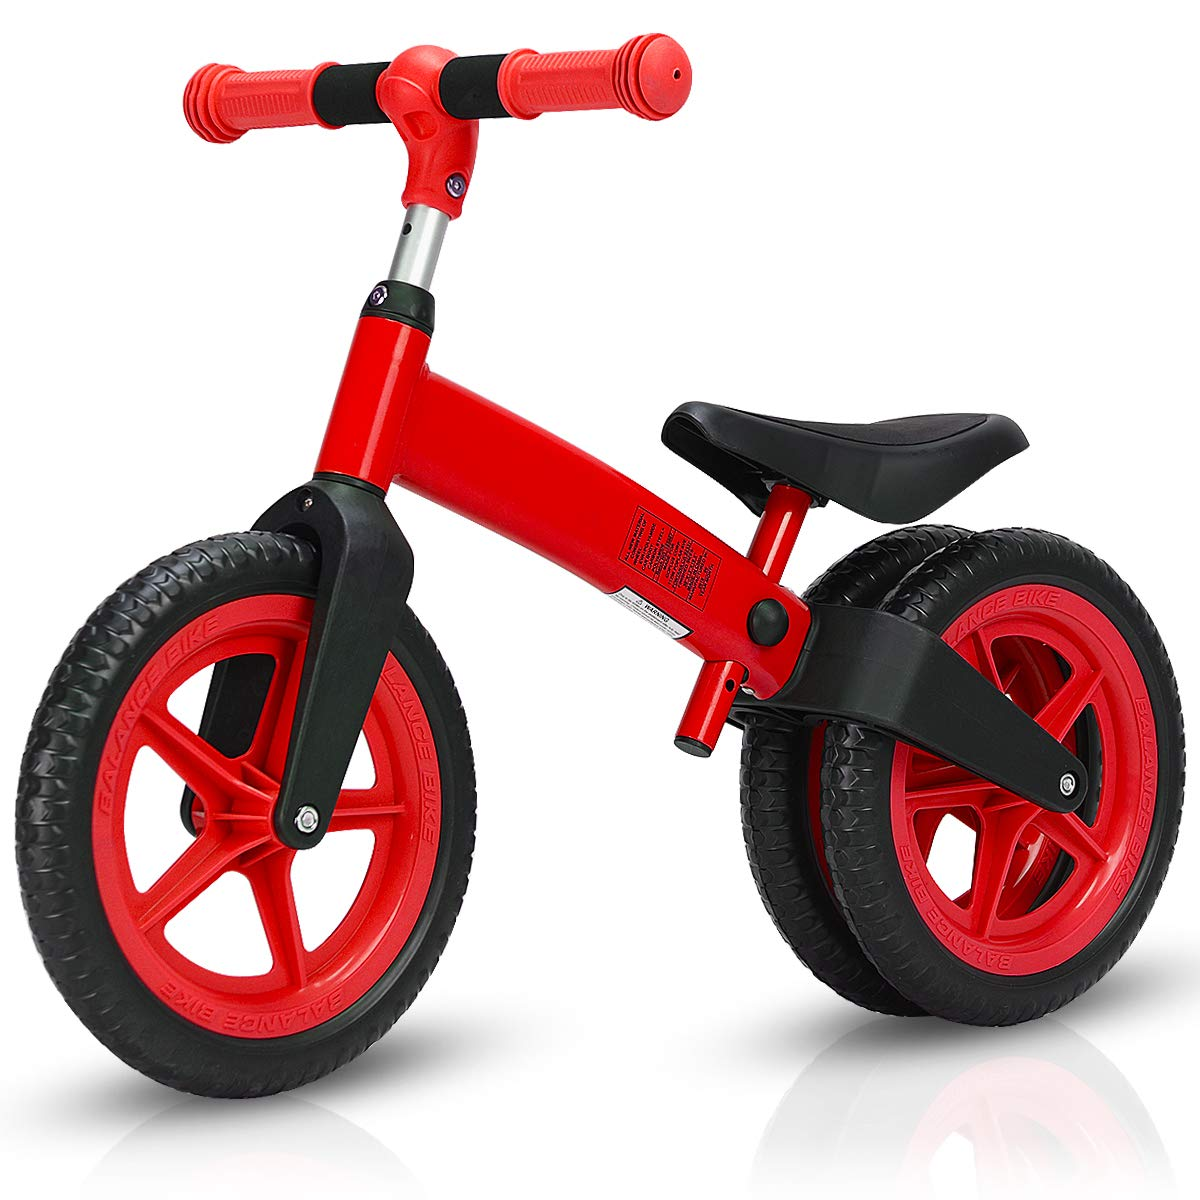 Costzon Kids Balance Bike, Classic Lightweight No-Pedal Learn to Ride Pre Bike w/Adjustable Handlebar & Seat Cycling Training for Kids and Toddlers, Walking Bicycle (Red)